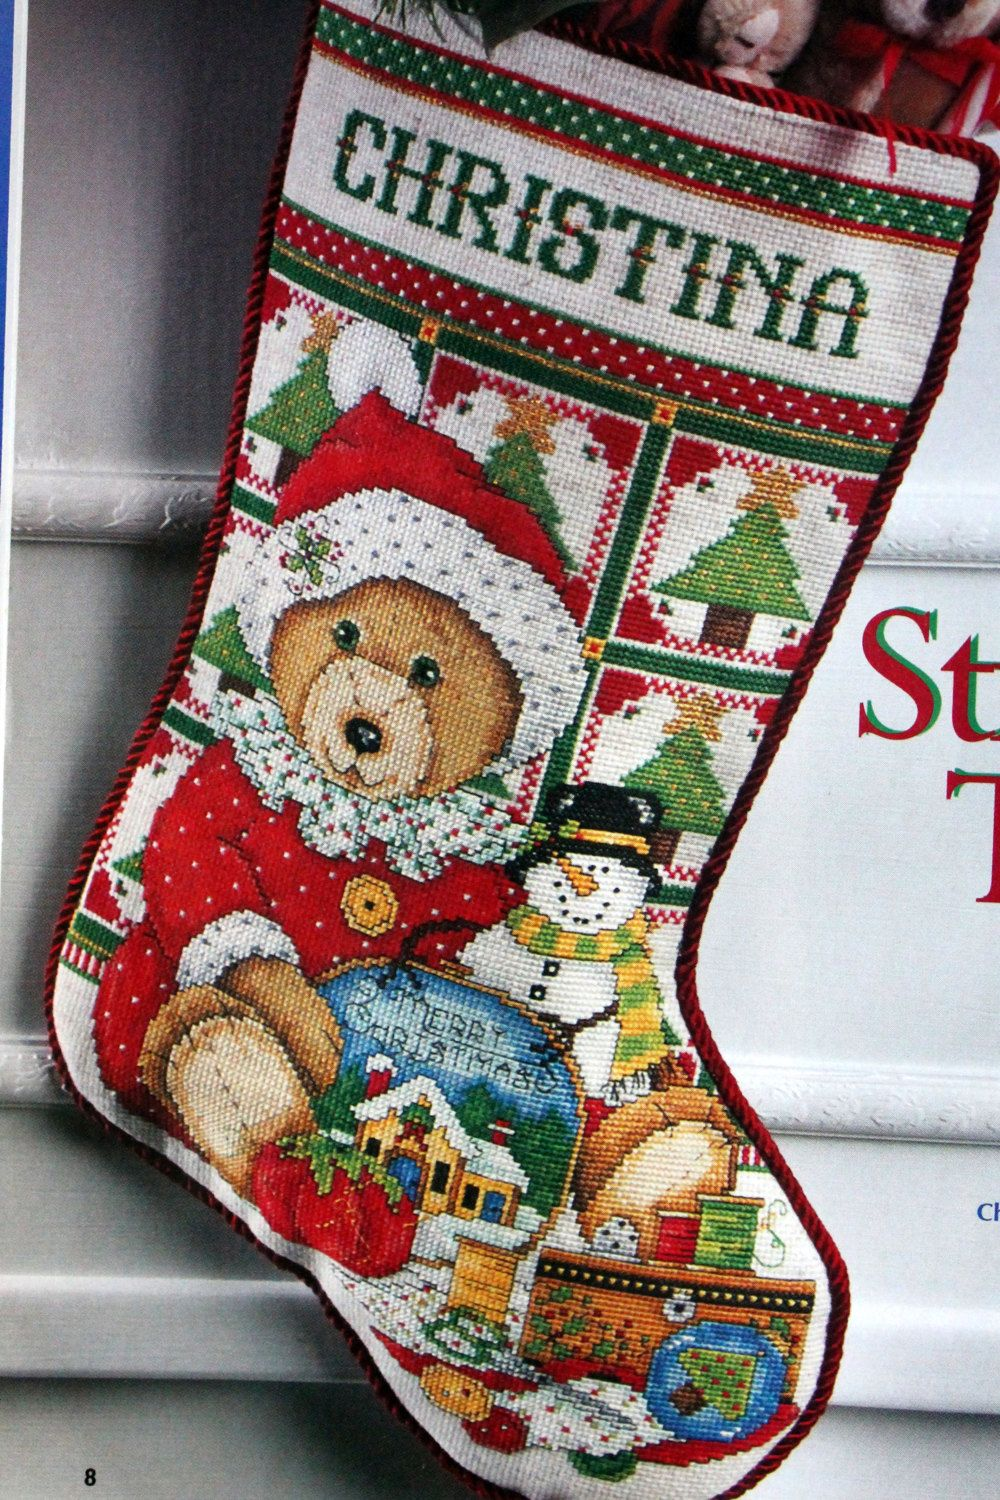 Bucella Cross Stitch Kit Christmas Counted Cross Stitch Bear in Stocking Hoop DIY Craft Small Counted Cross Stitch Bear